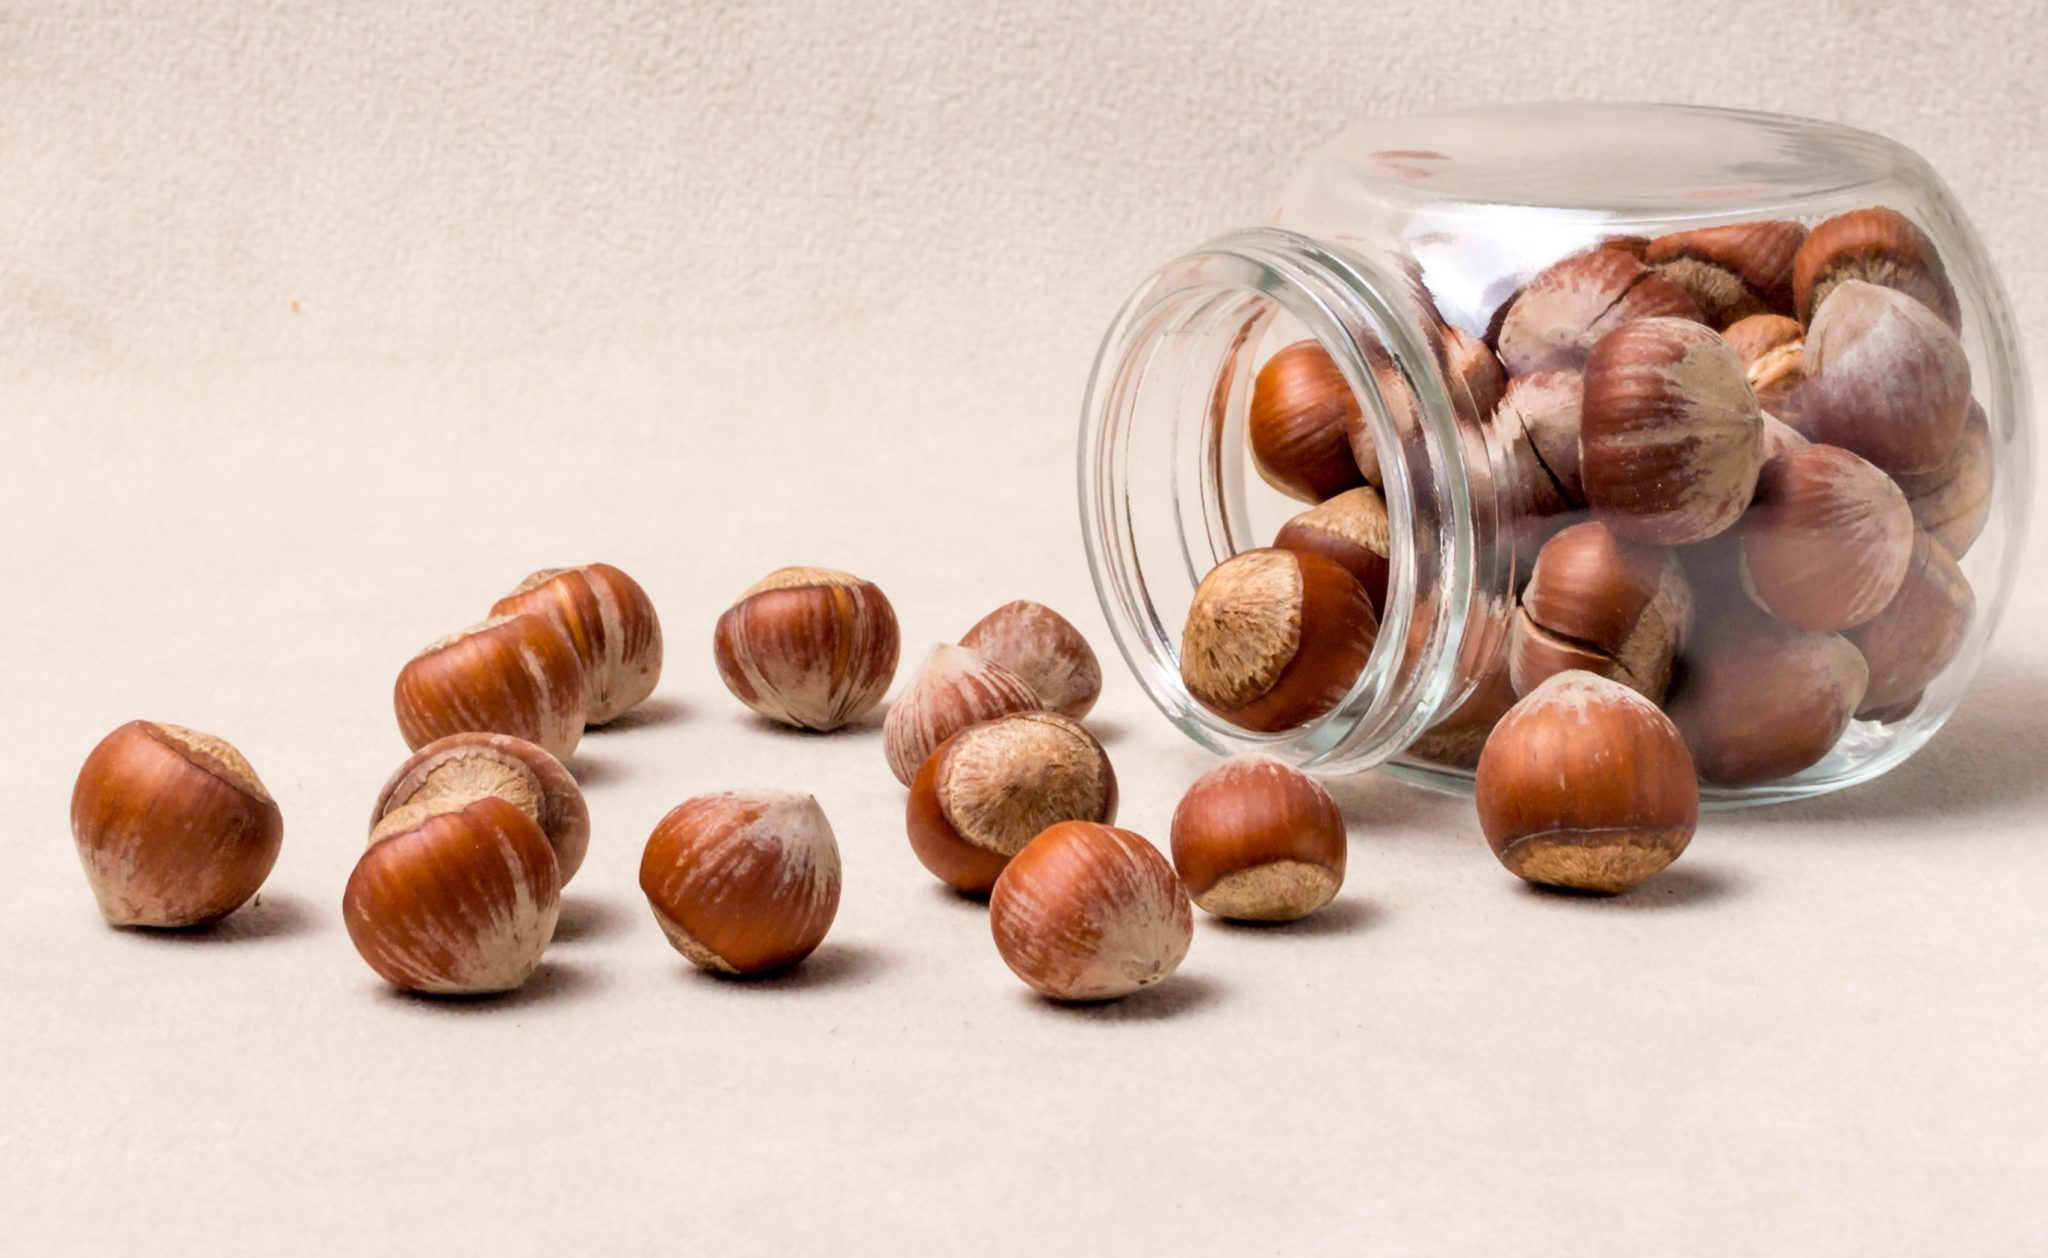 How Long Do Hazelnuts Last? Can They Go Bad?